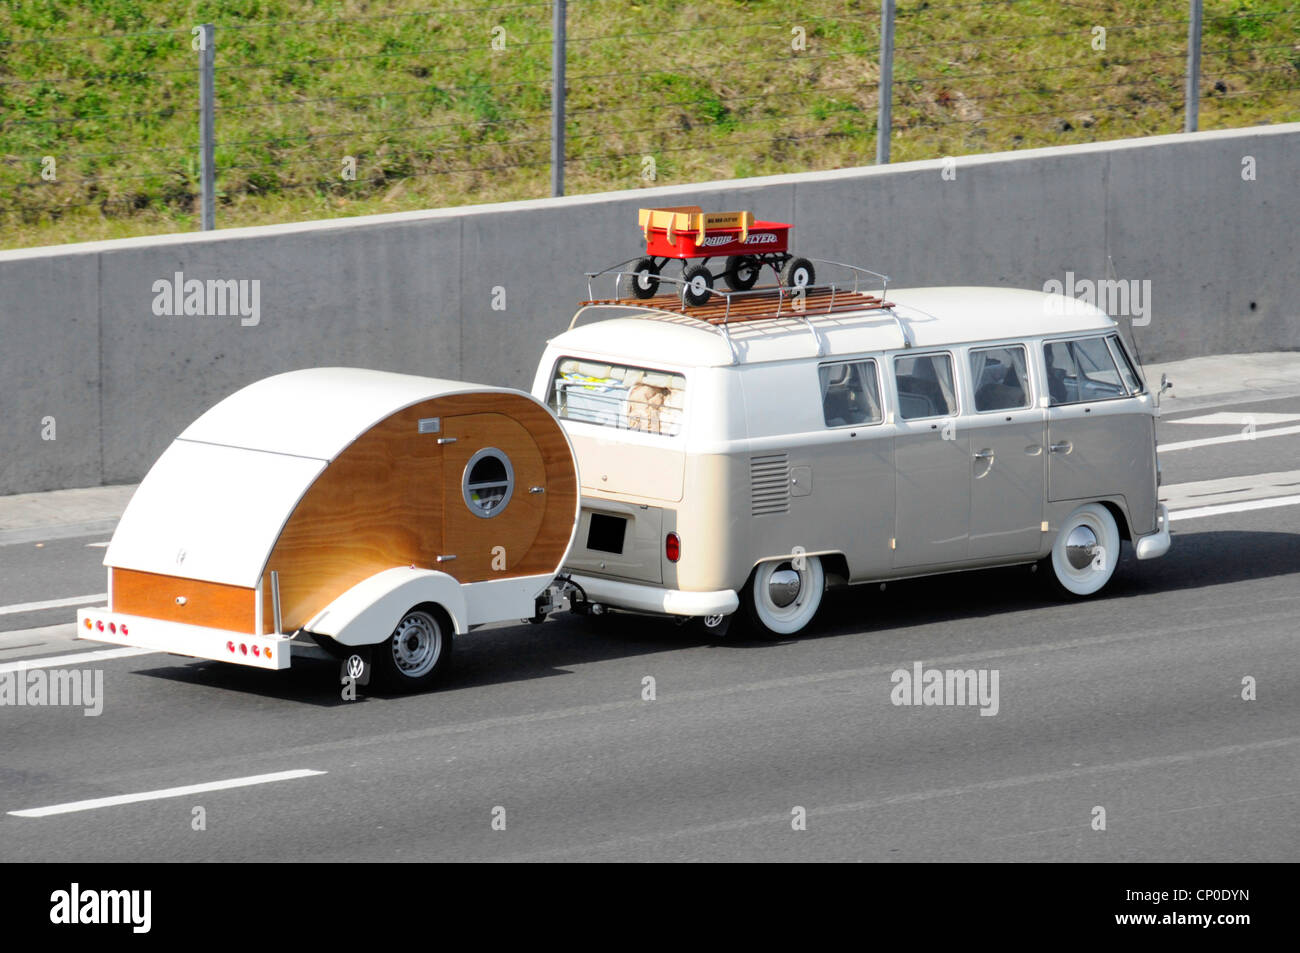 VW RV Campervan Motorhome With Roof Rack Towing Teardrop Micro Trailer Type Camper Caravan Along M25 Motorway Essex England UK